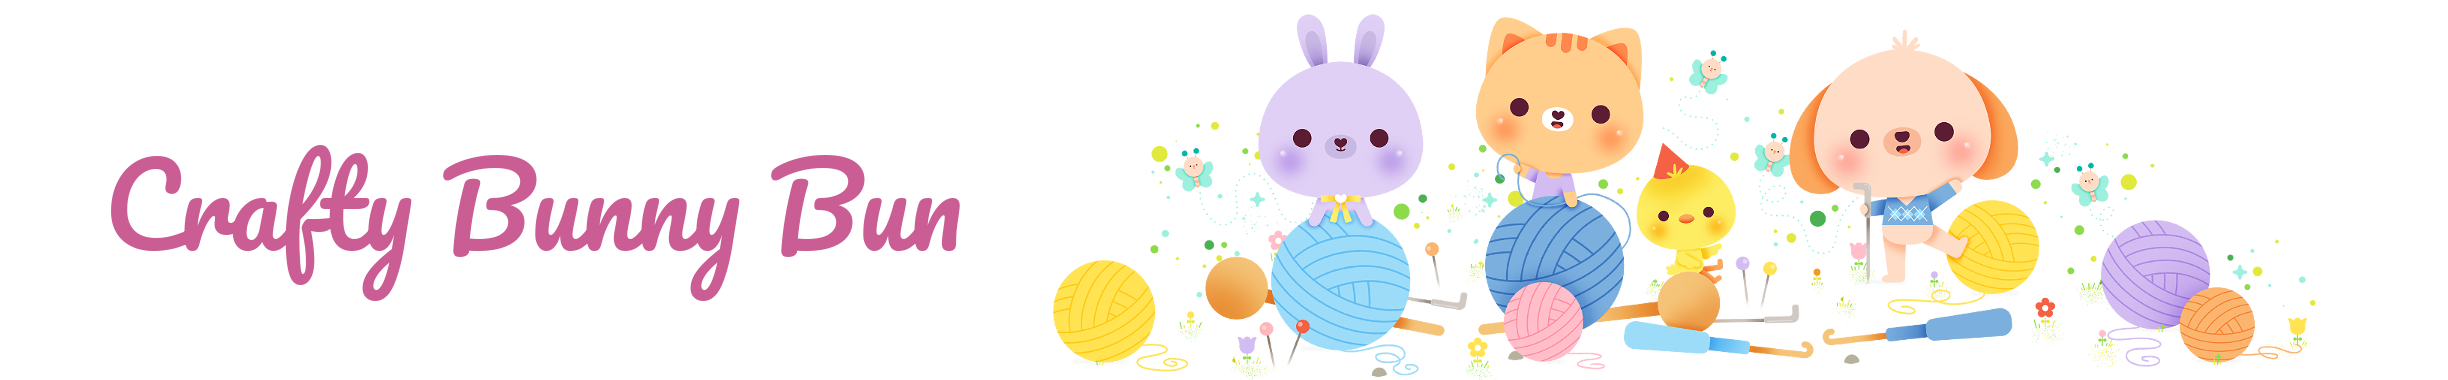 crafty bunny bun logo and banner